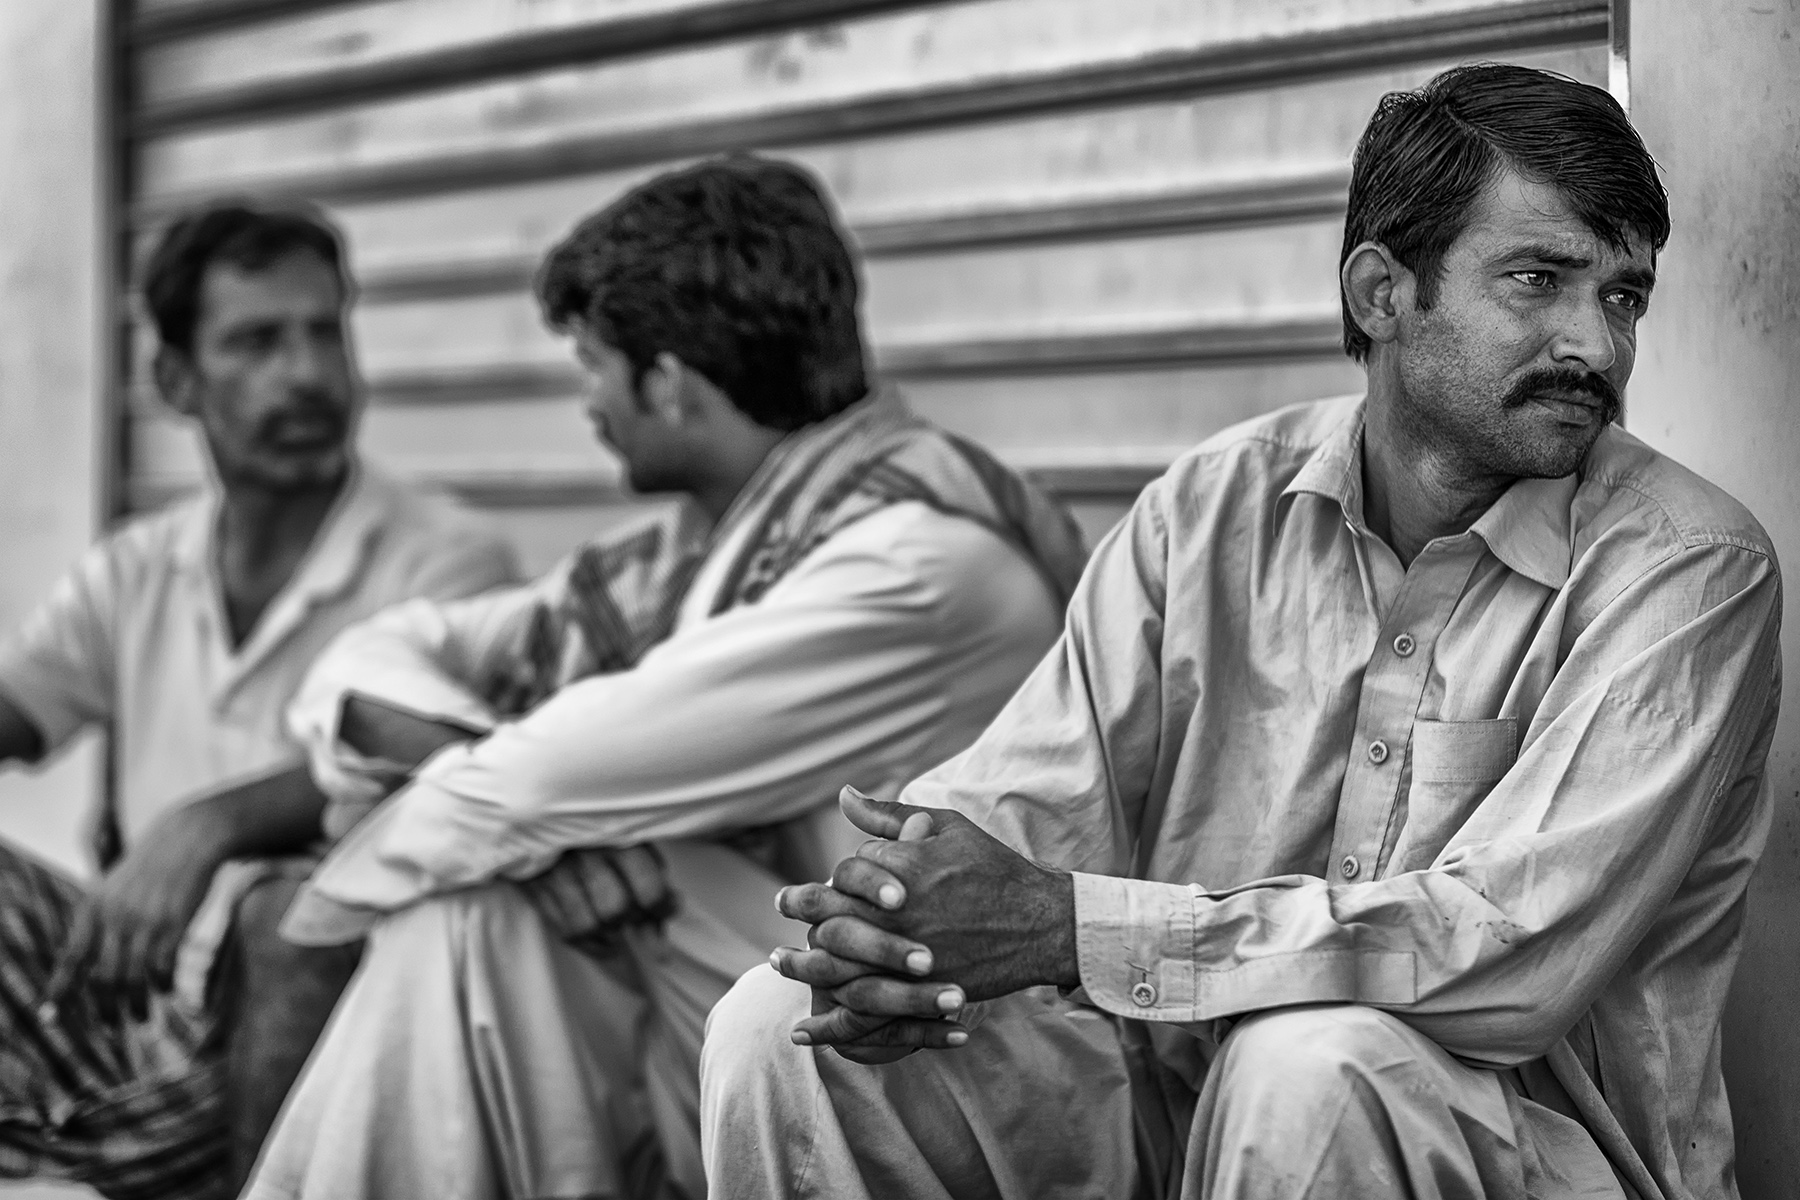 On Friday mornings, workers either wait in the street for a potential day job or enjoy their favorite cricket game.